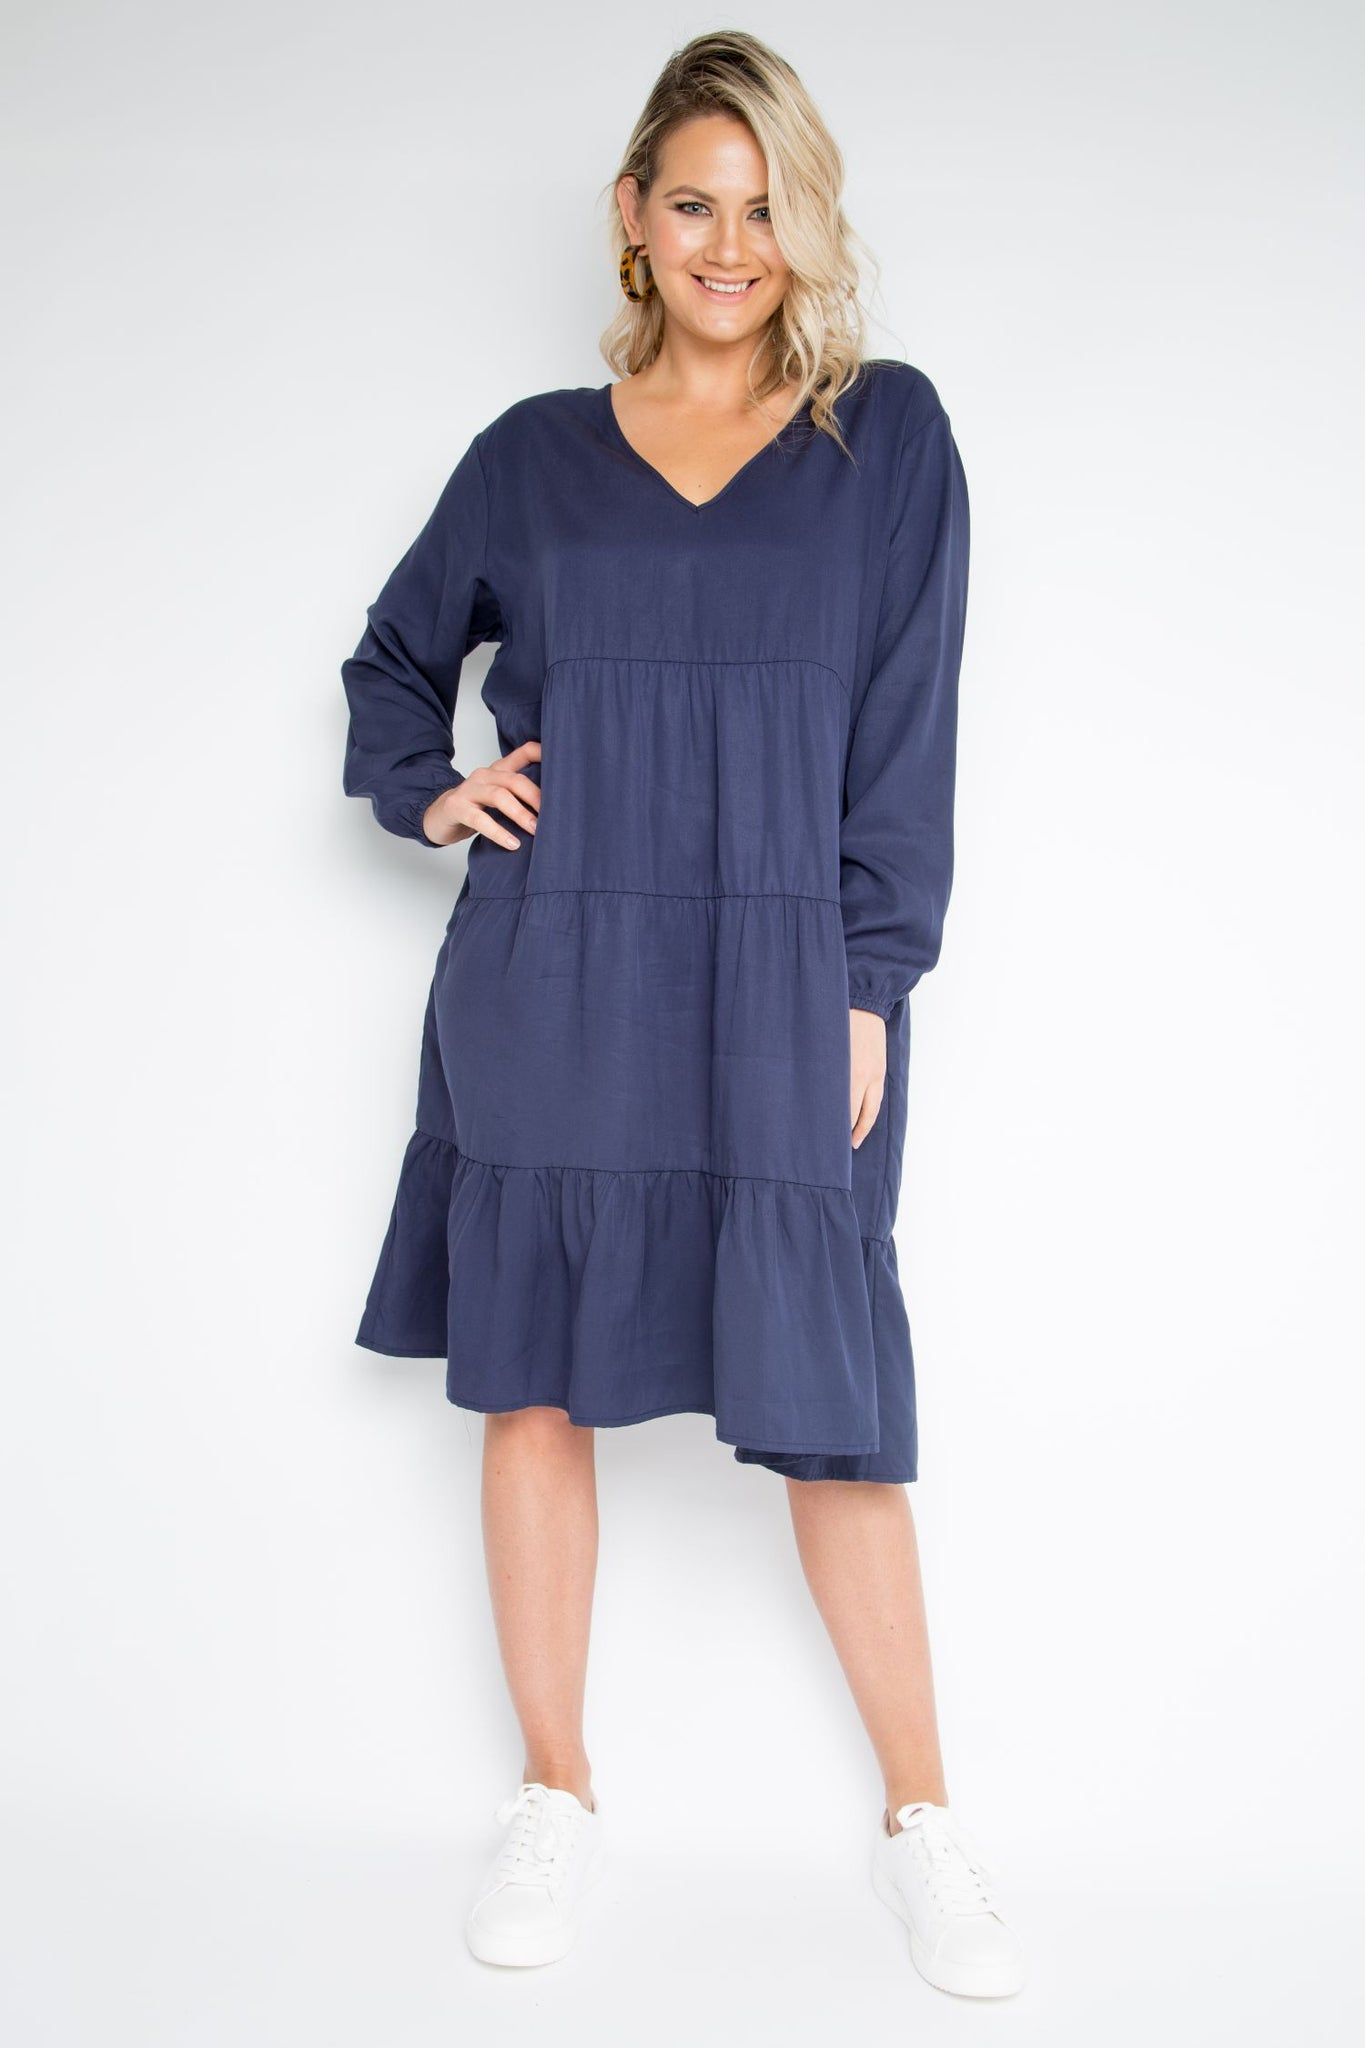 Long Sleeve Chic Dress in Navy (Tencel)